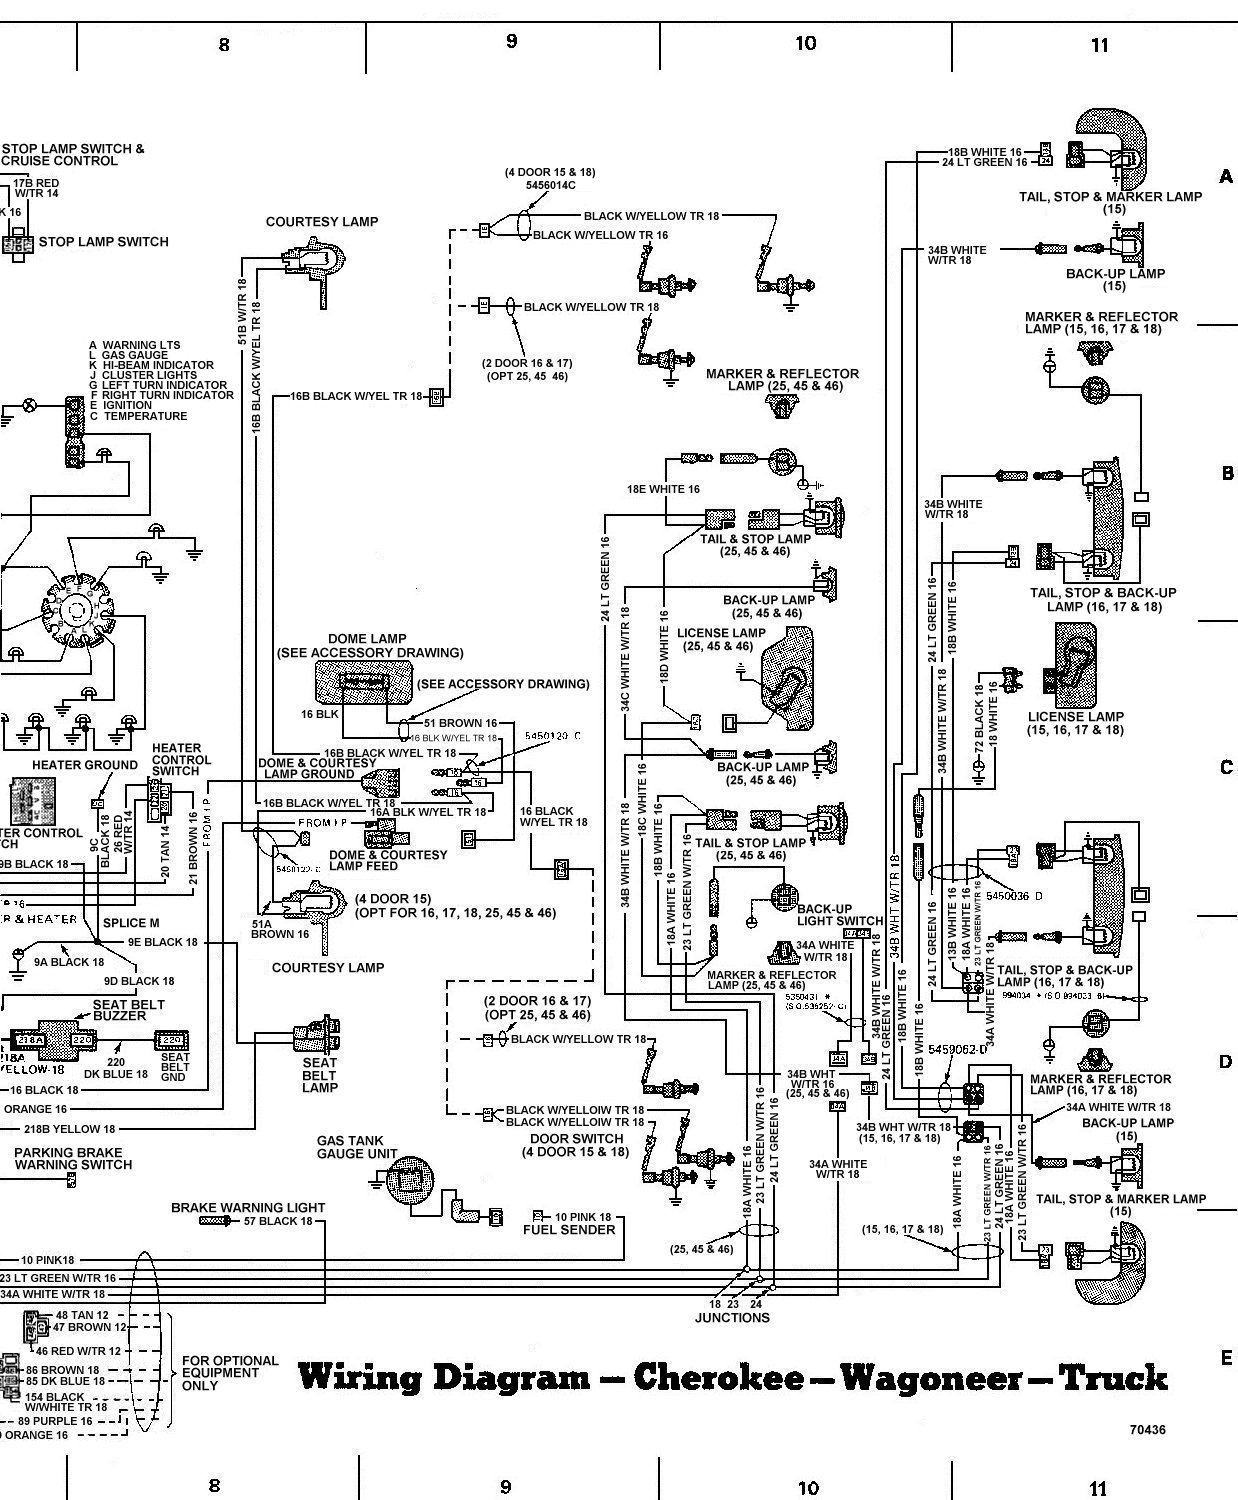 Jeep Commander Wiring Diagram Another Blog About Jk Radio 2001 Harness Schematics Rh Caltech Ctp Com 2010 Stereo